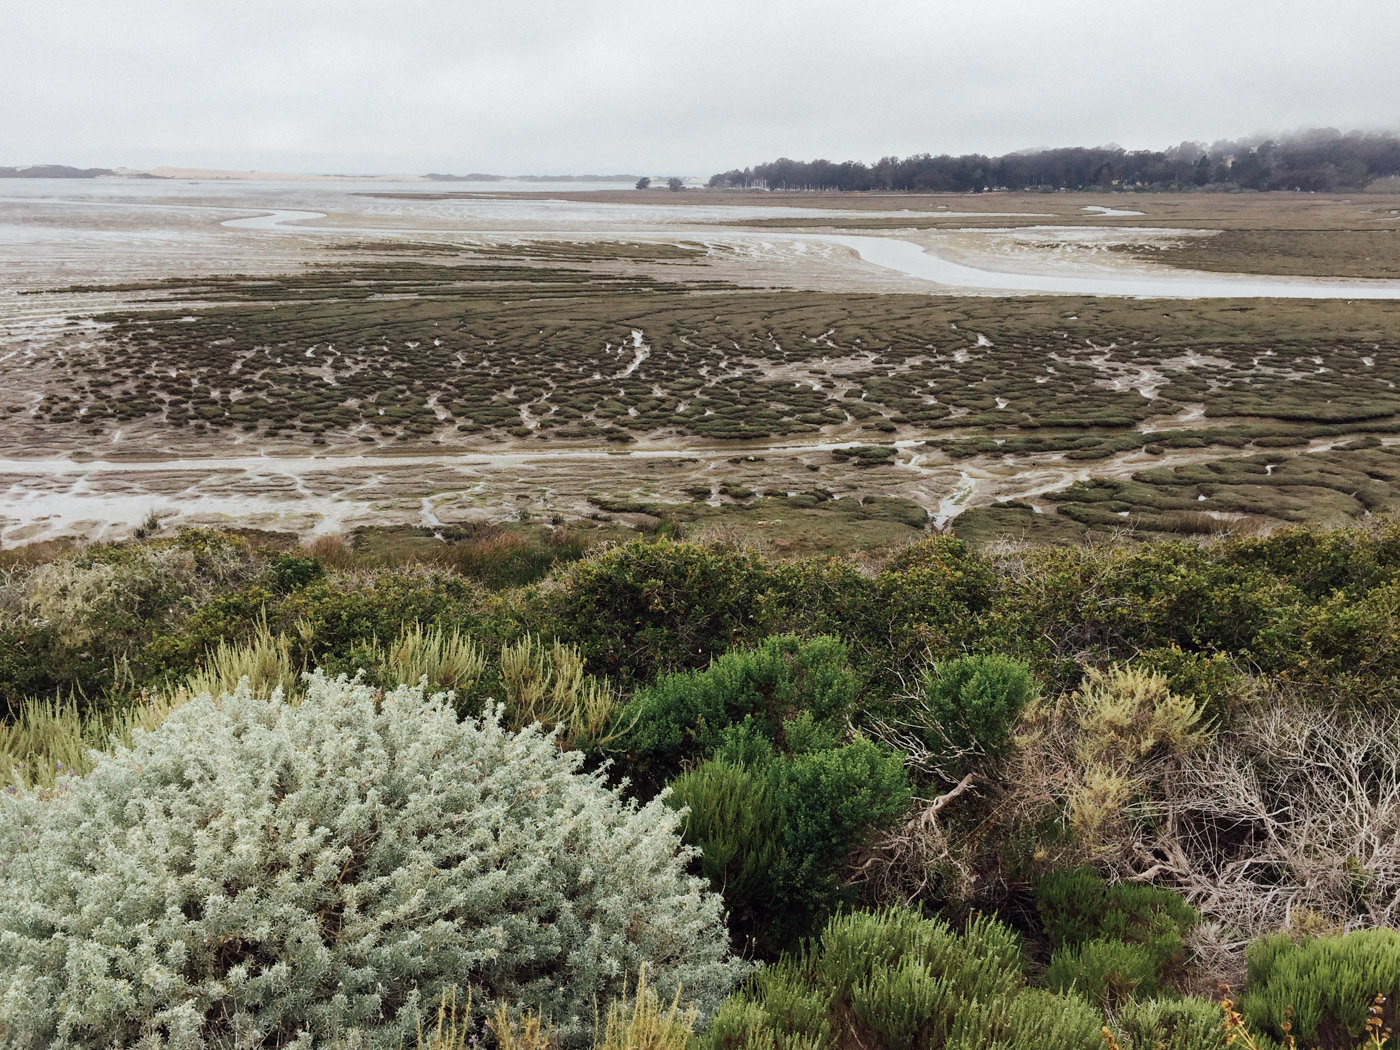 Looking across the Morro Bay estuary - Elfin Forest - Let's Photo Trip